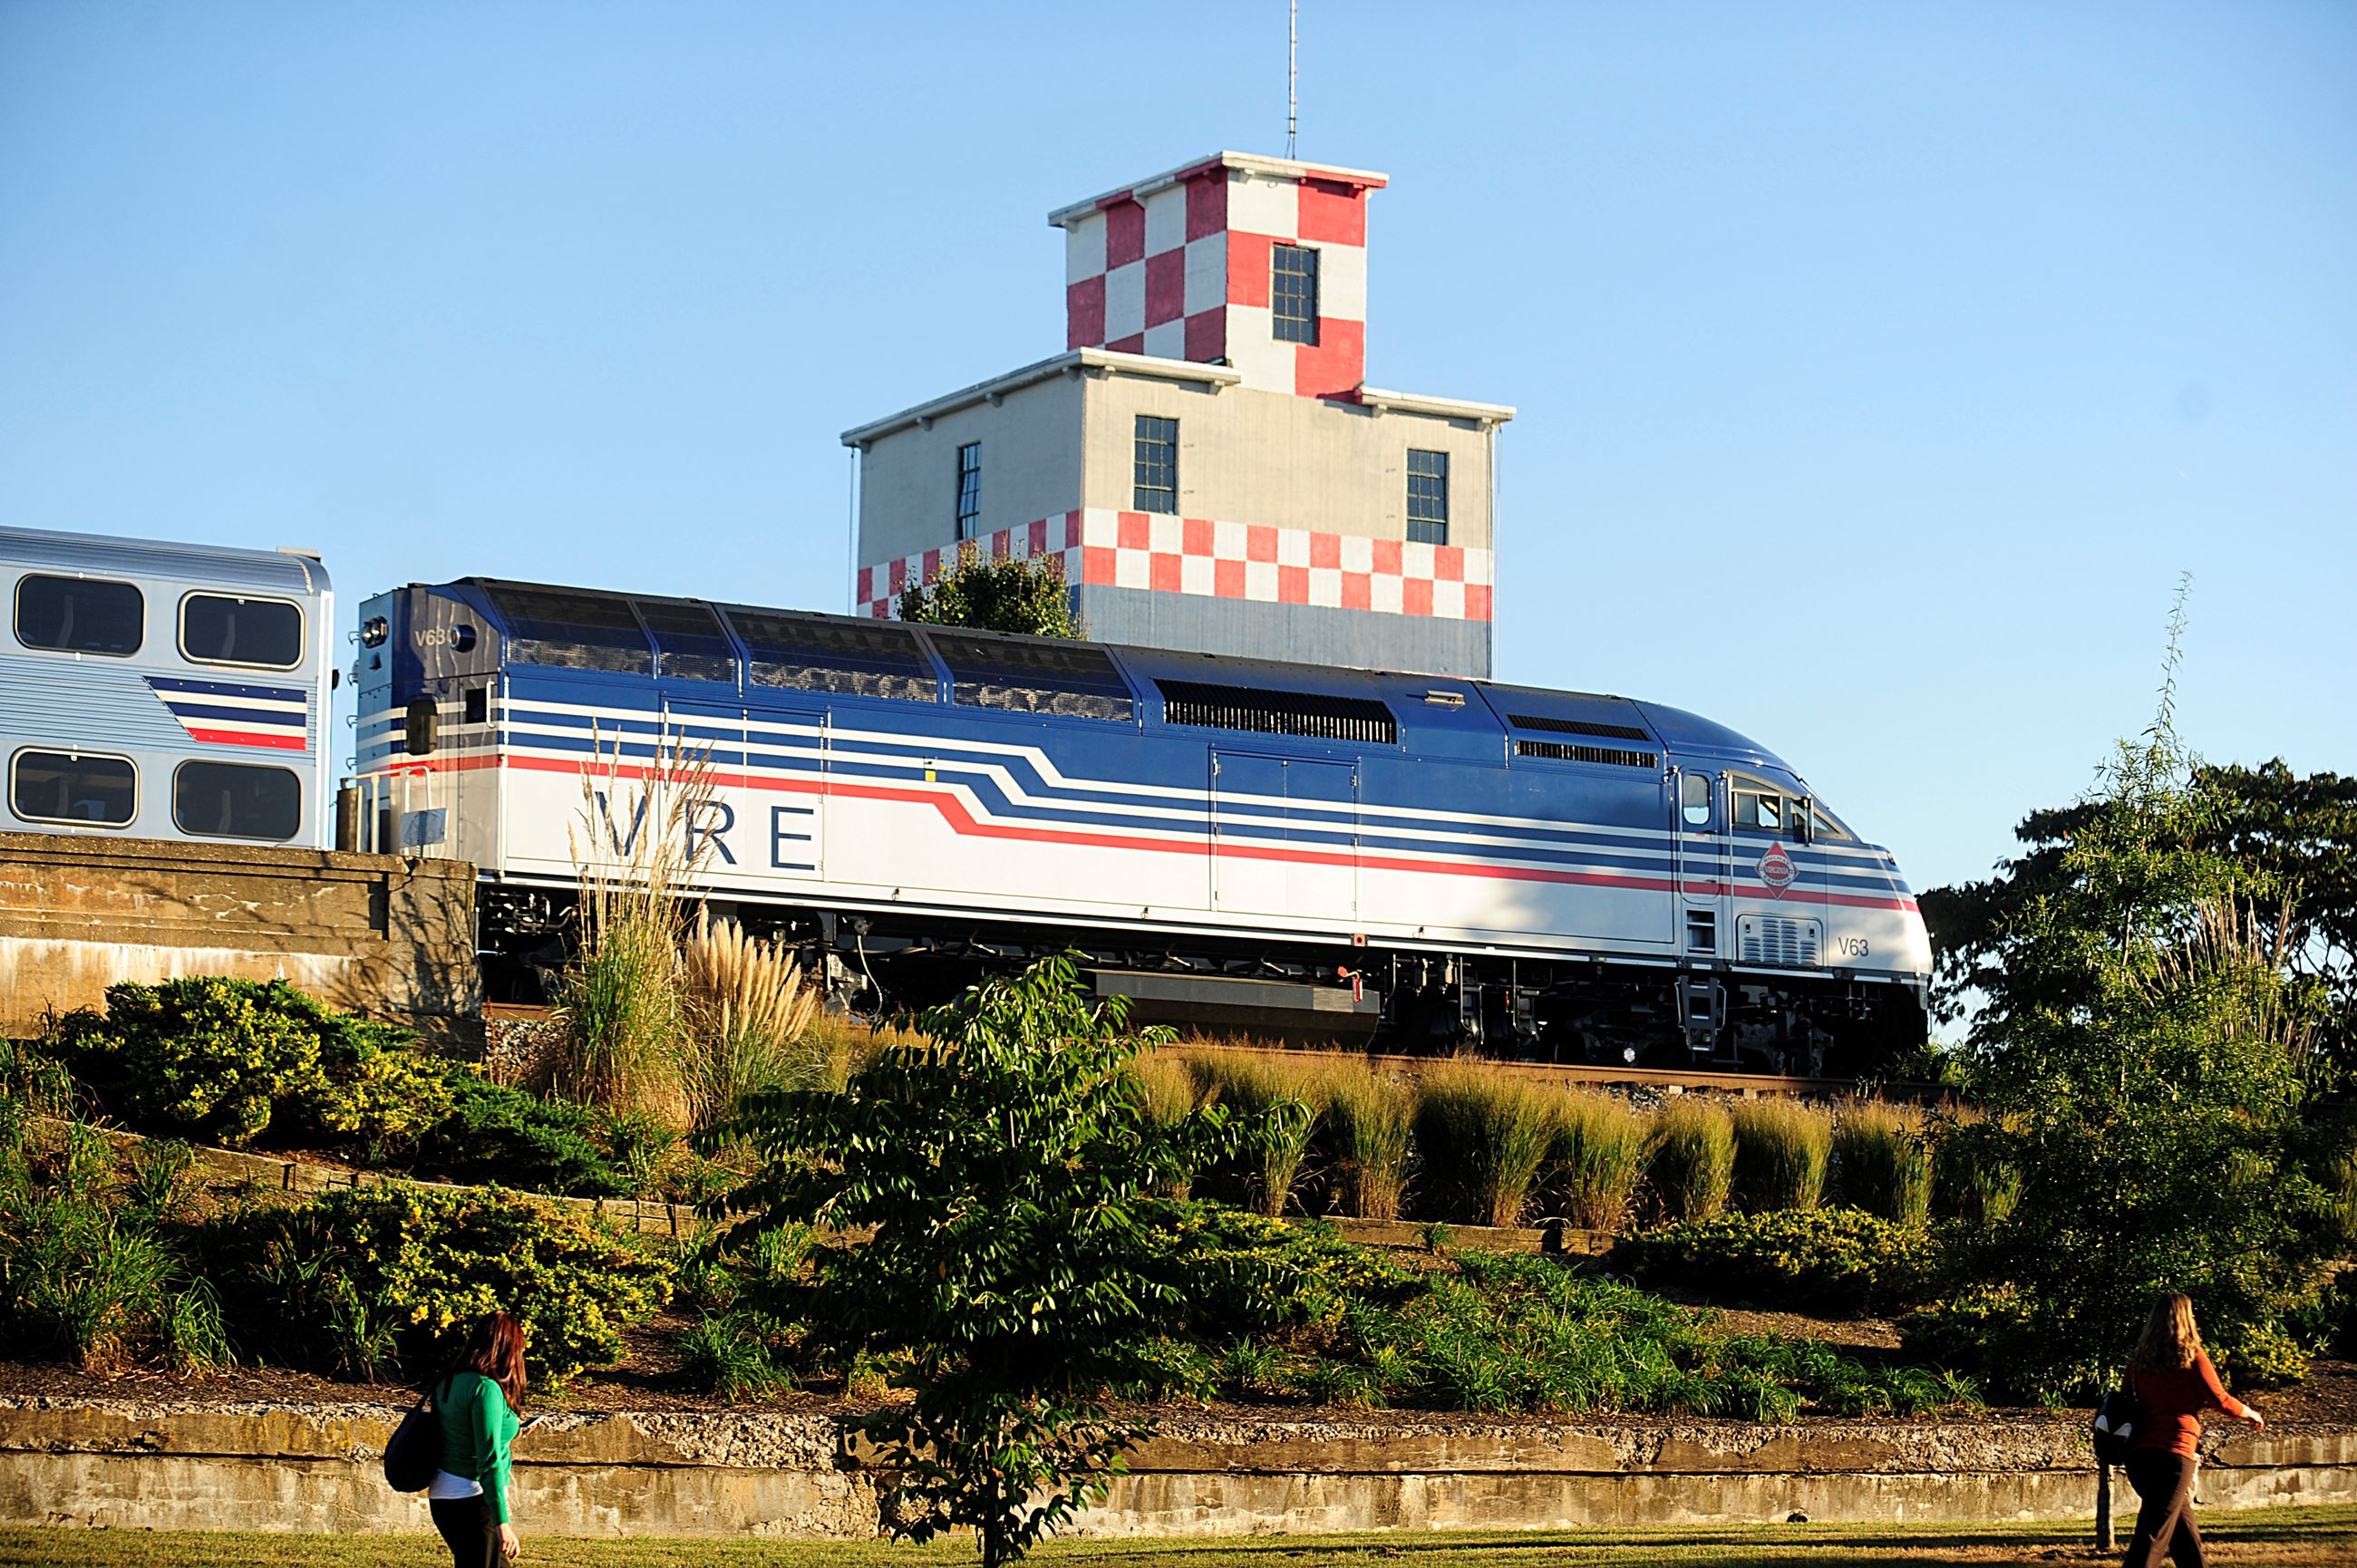 VRE Trains